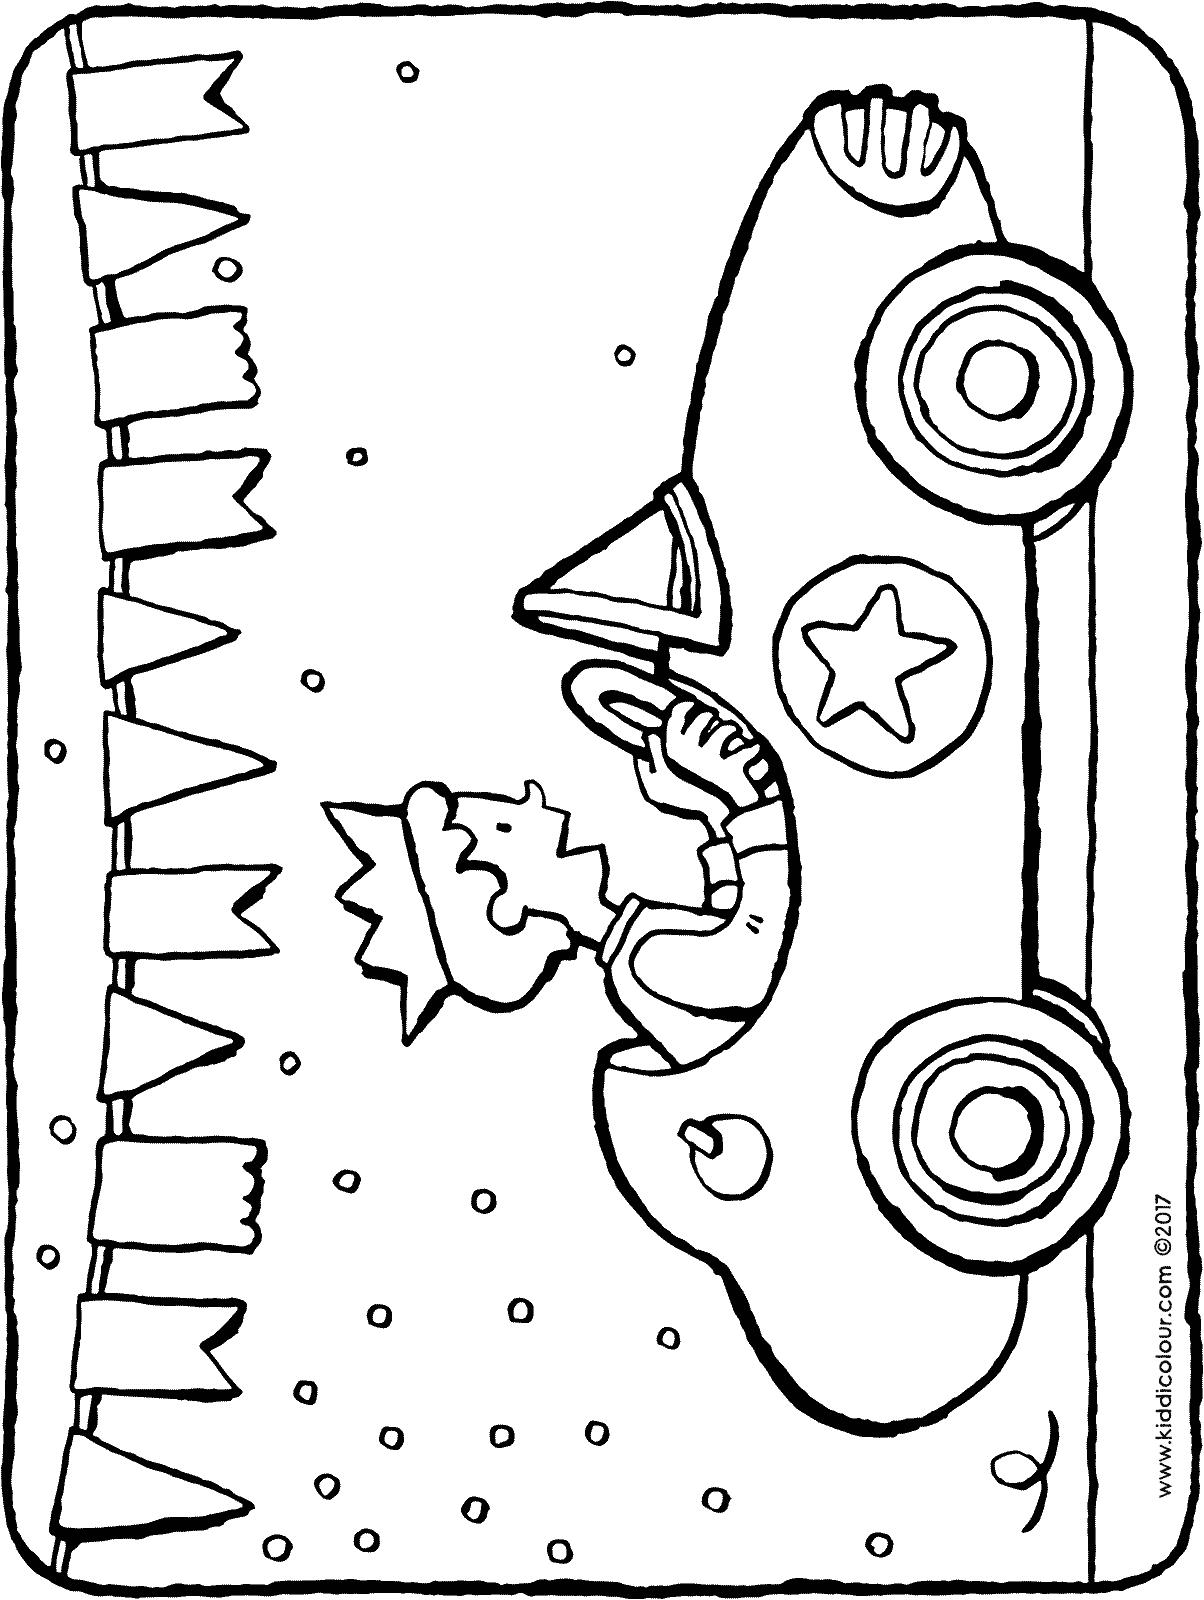 drawing of birthday celebration ; racing-car-birthday-celebration-colouring-page-01H